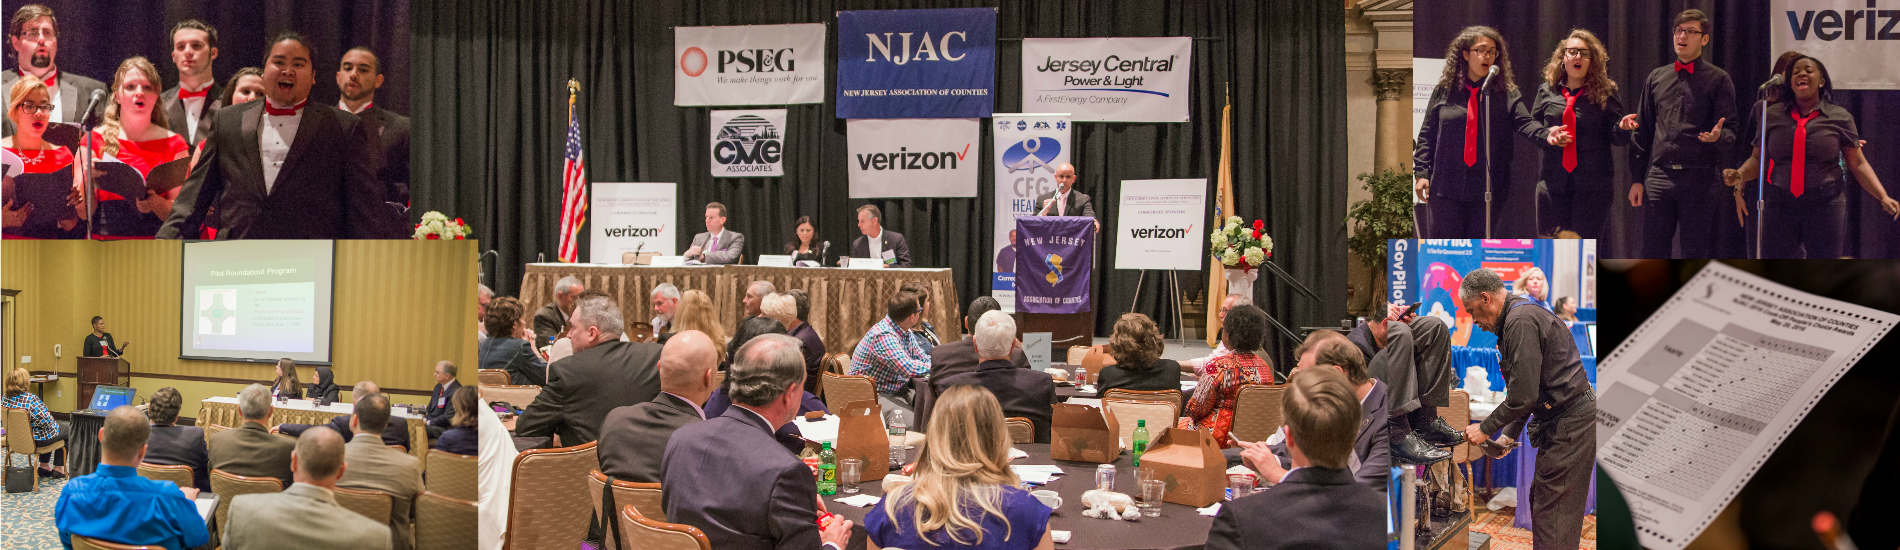 2017 NJAC ANNUAL CONFERENCE